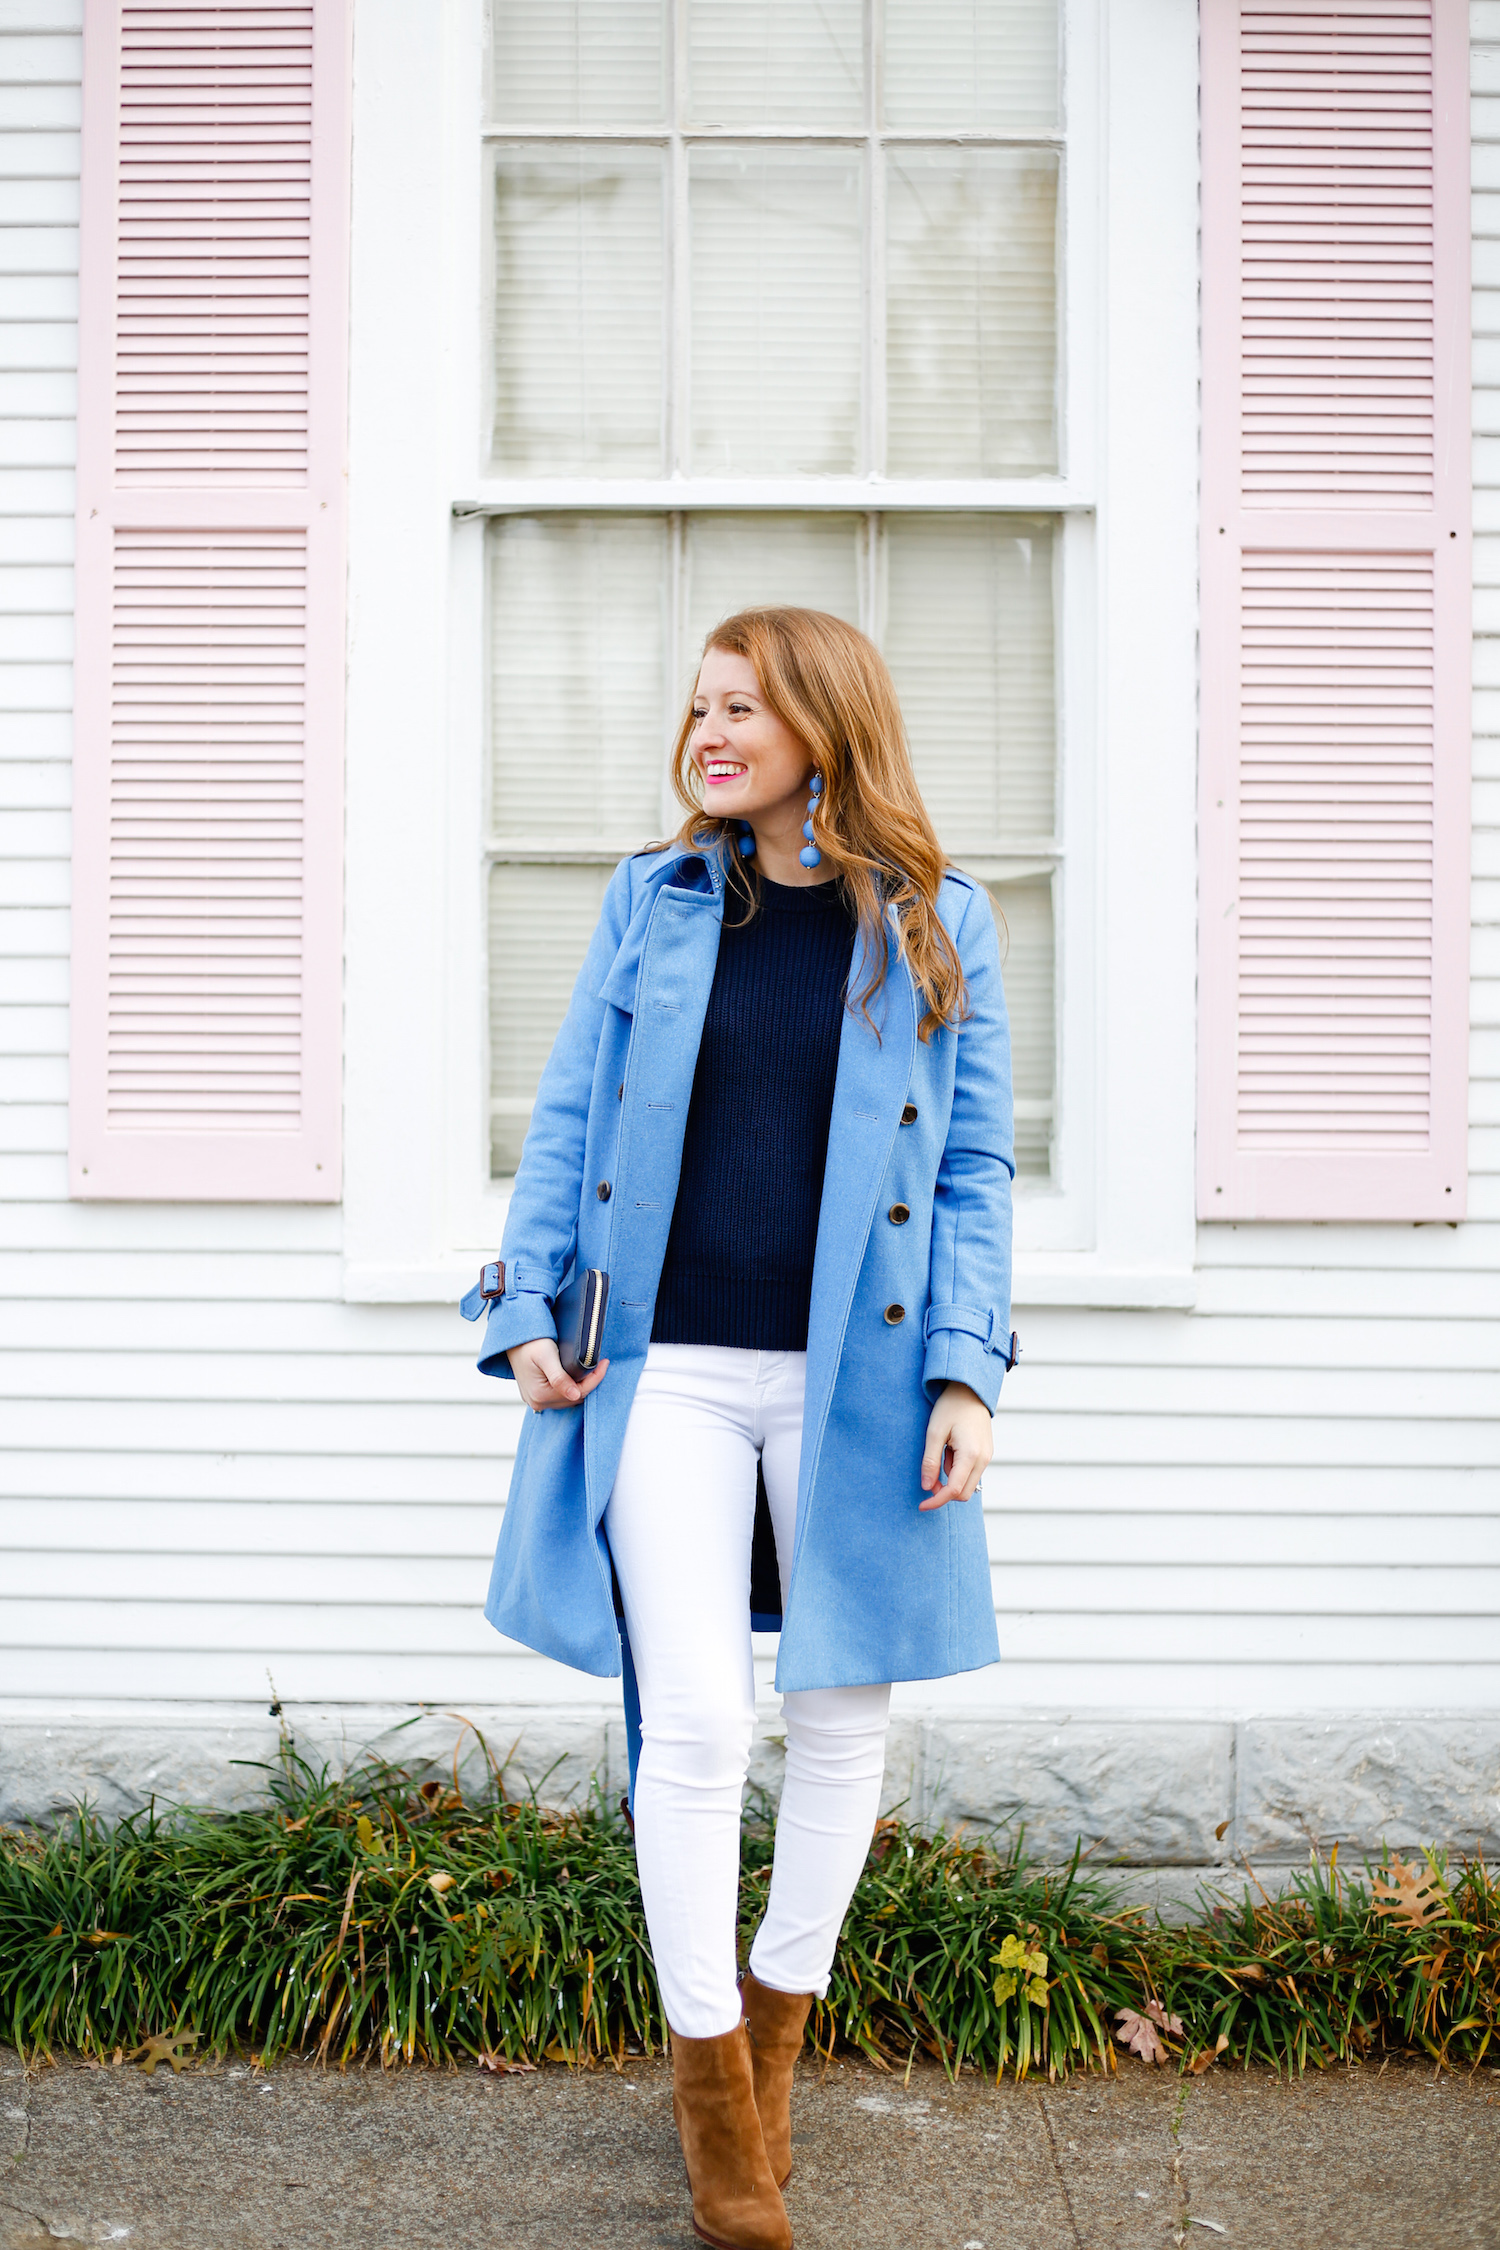 Design Darling Bubble Earrings J Crew Wool Trench Coat Frame White Jeans Sam Edelman Blake Booties